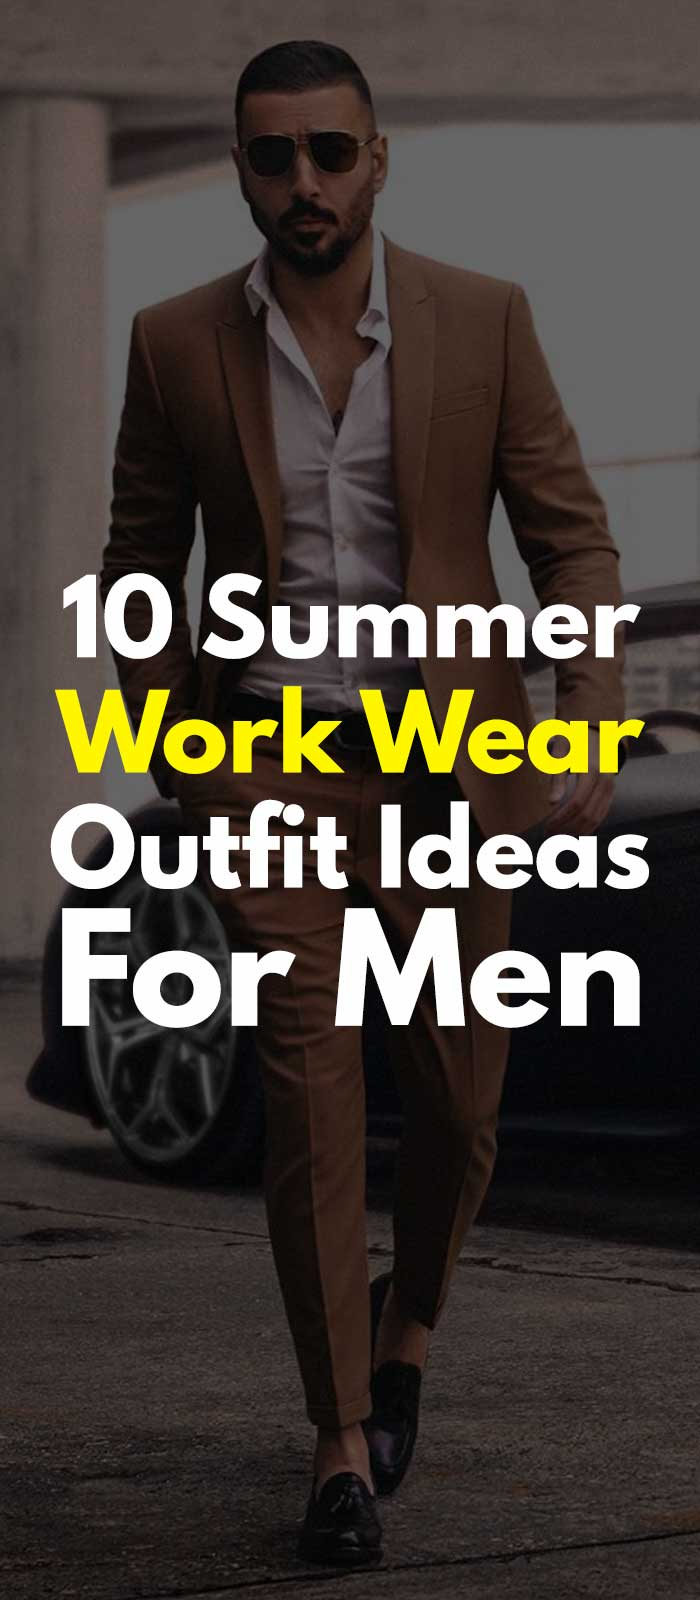 10 Summer Work Wear Outfit Ideas For Men